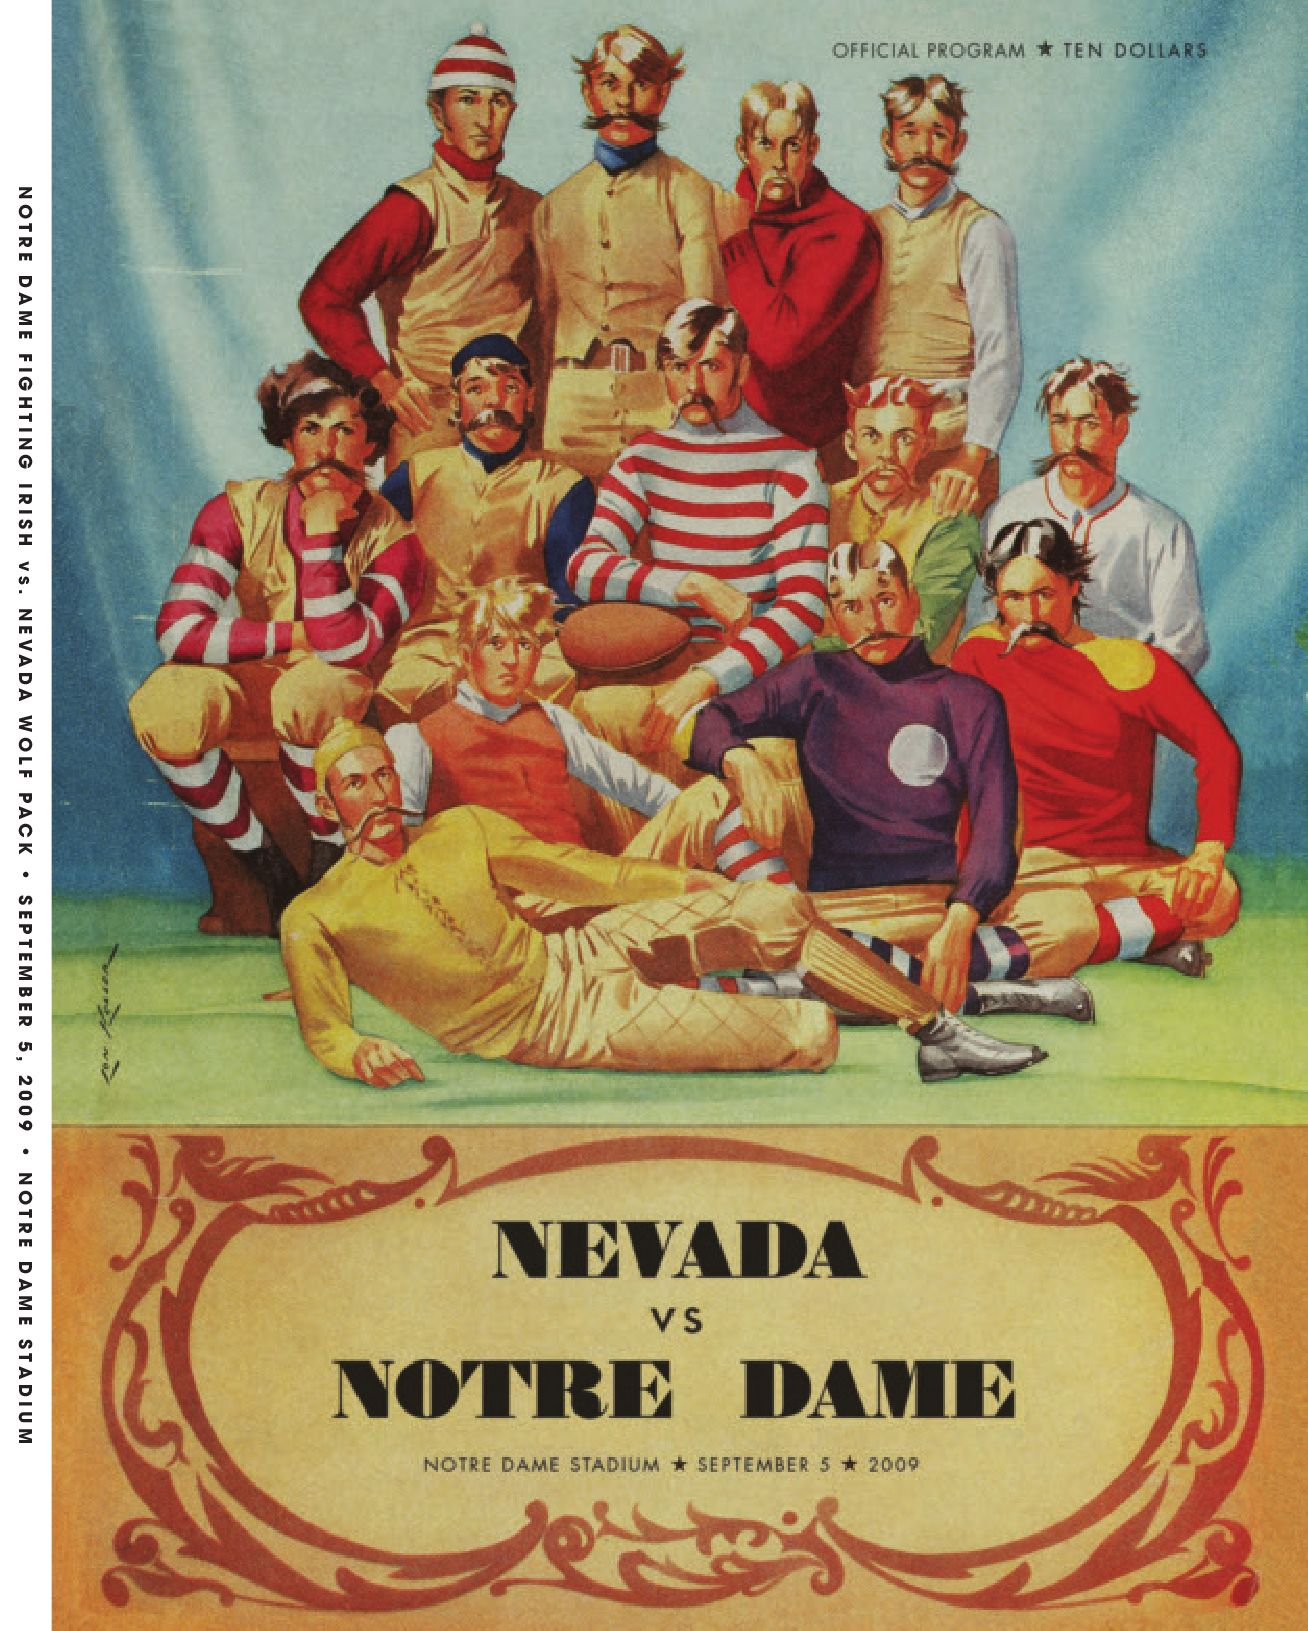 ba1315ae9f0 2009 Notre Dame Football Game Program - Sept. 5 vs. Nevada by Chris Masters  - issuu